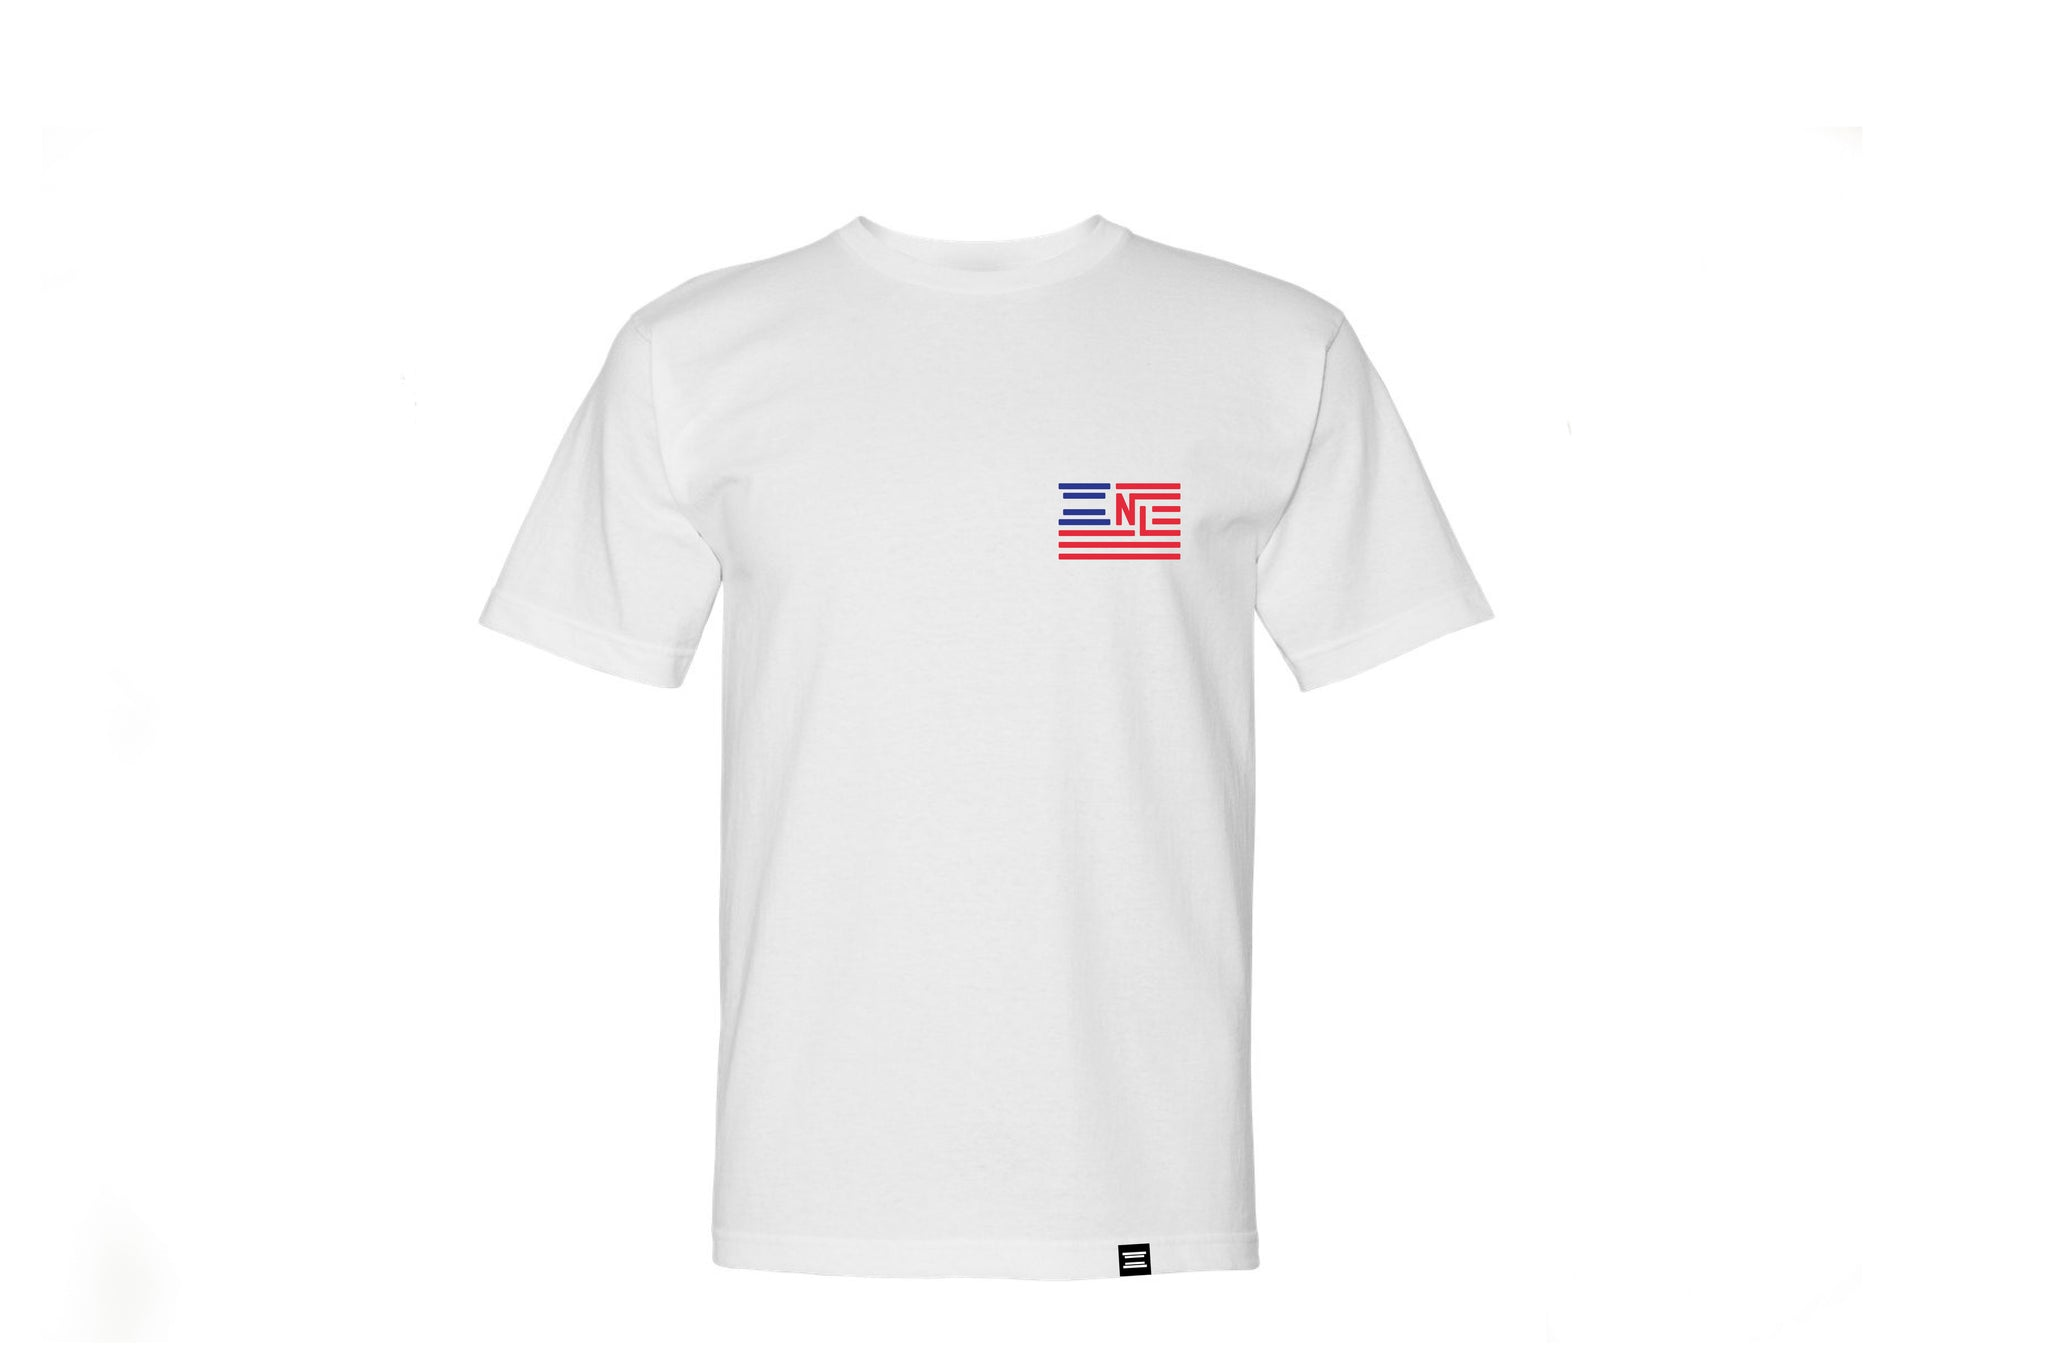 Liberty Tee - Embroidered (White)